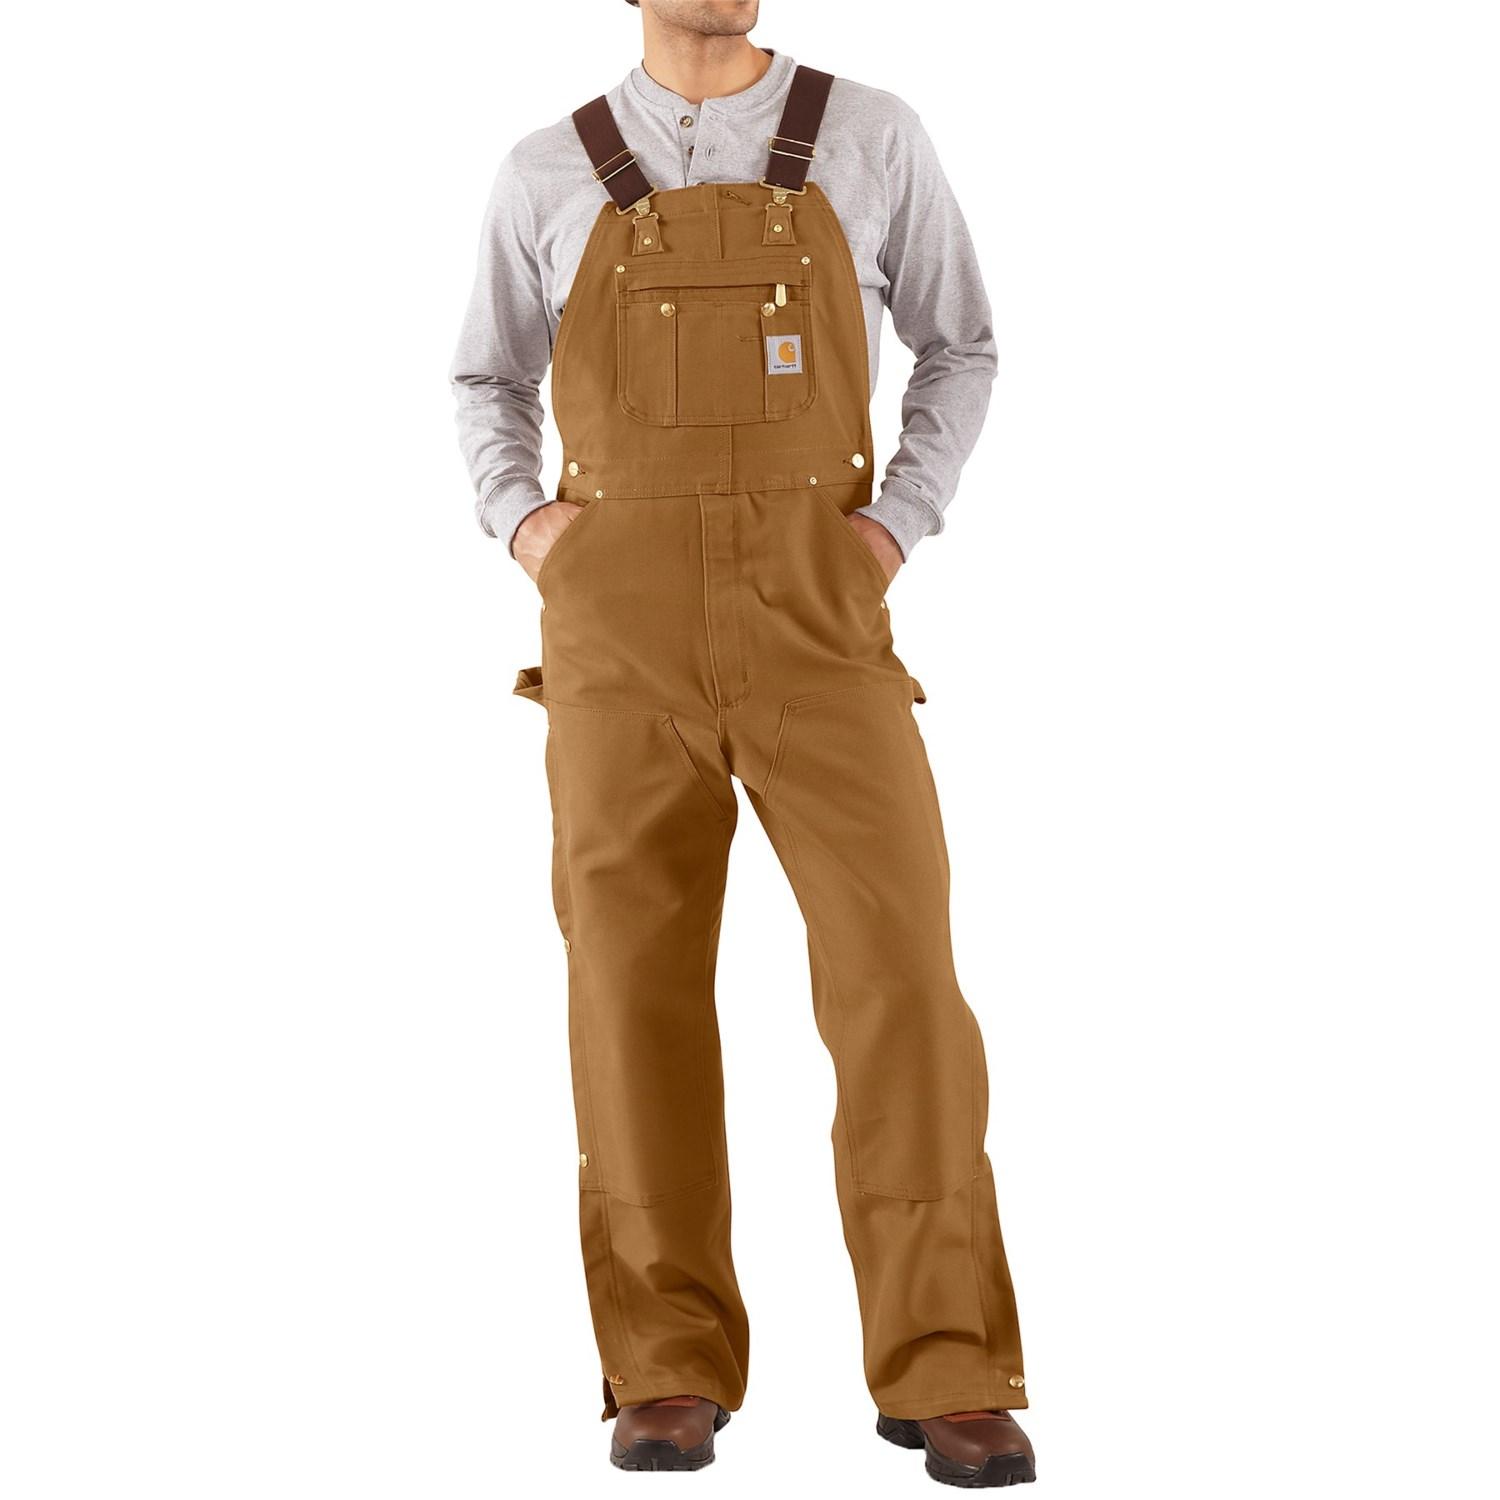 Our bib overalls for men include reflective overalls as well as flame-resistant and anti-static overalls for added safety. For use in colder weather, check out our big selection of lined and insulated overalls.